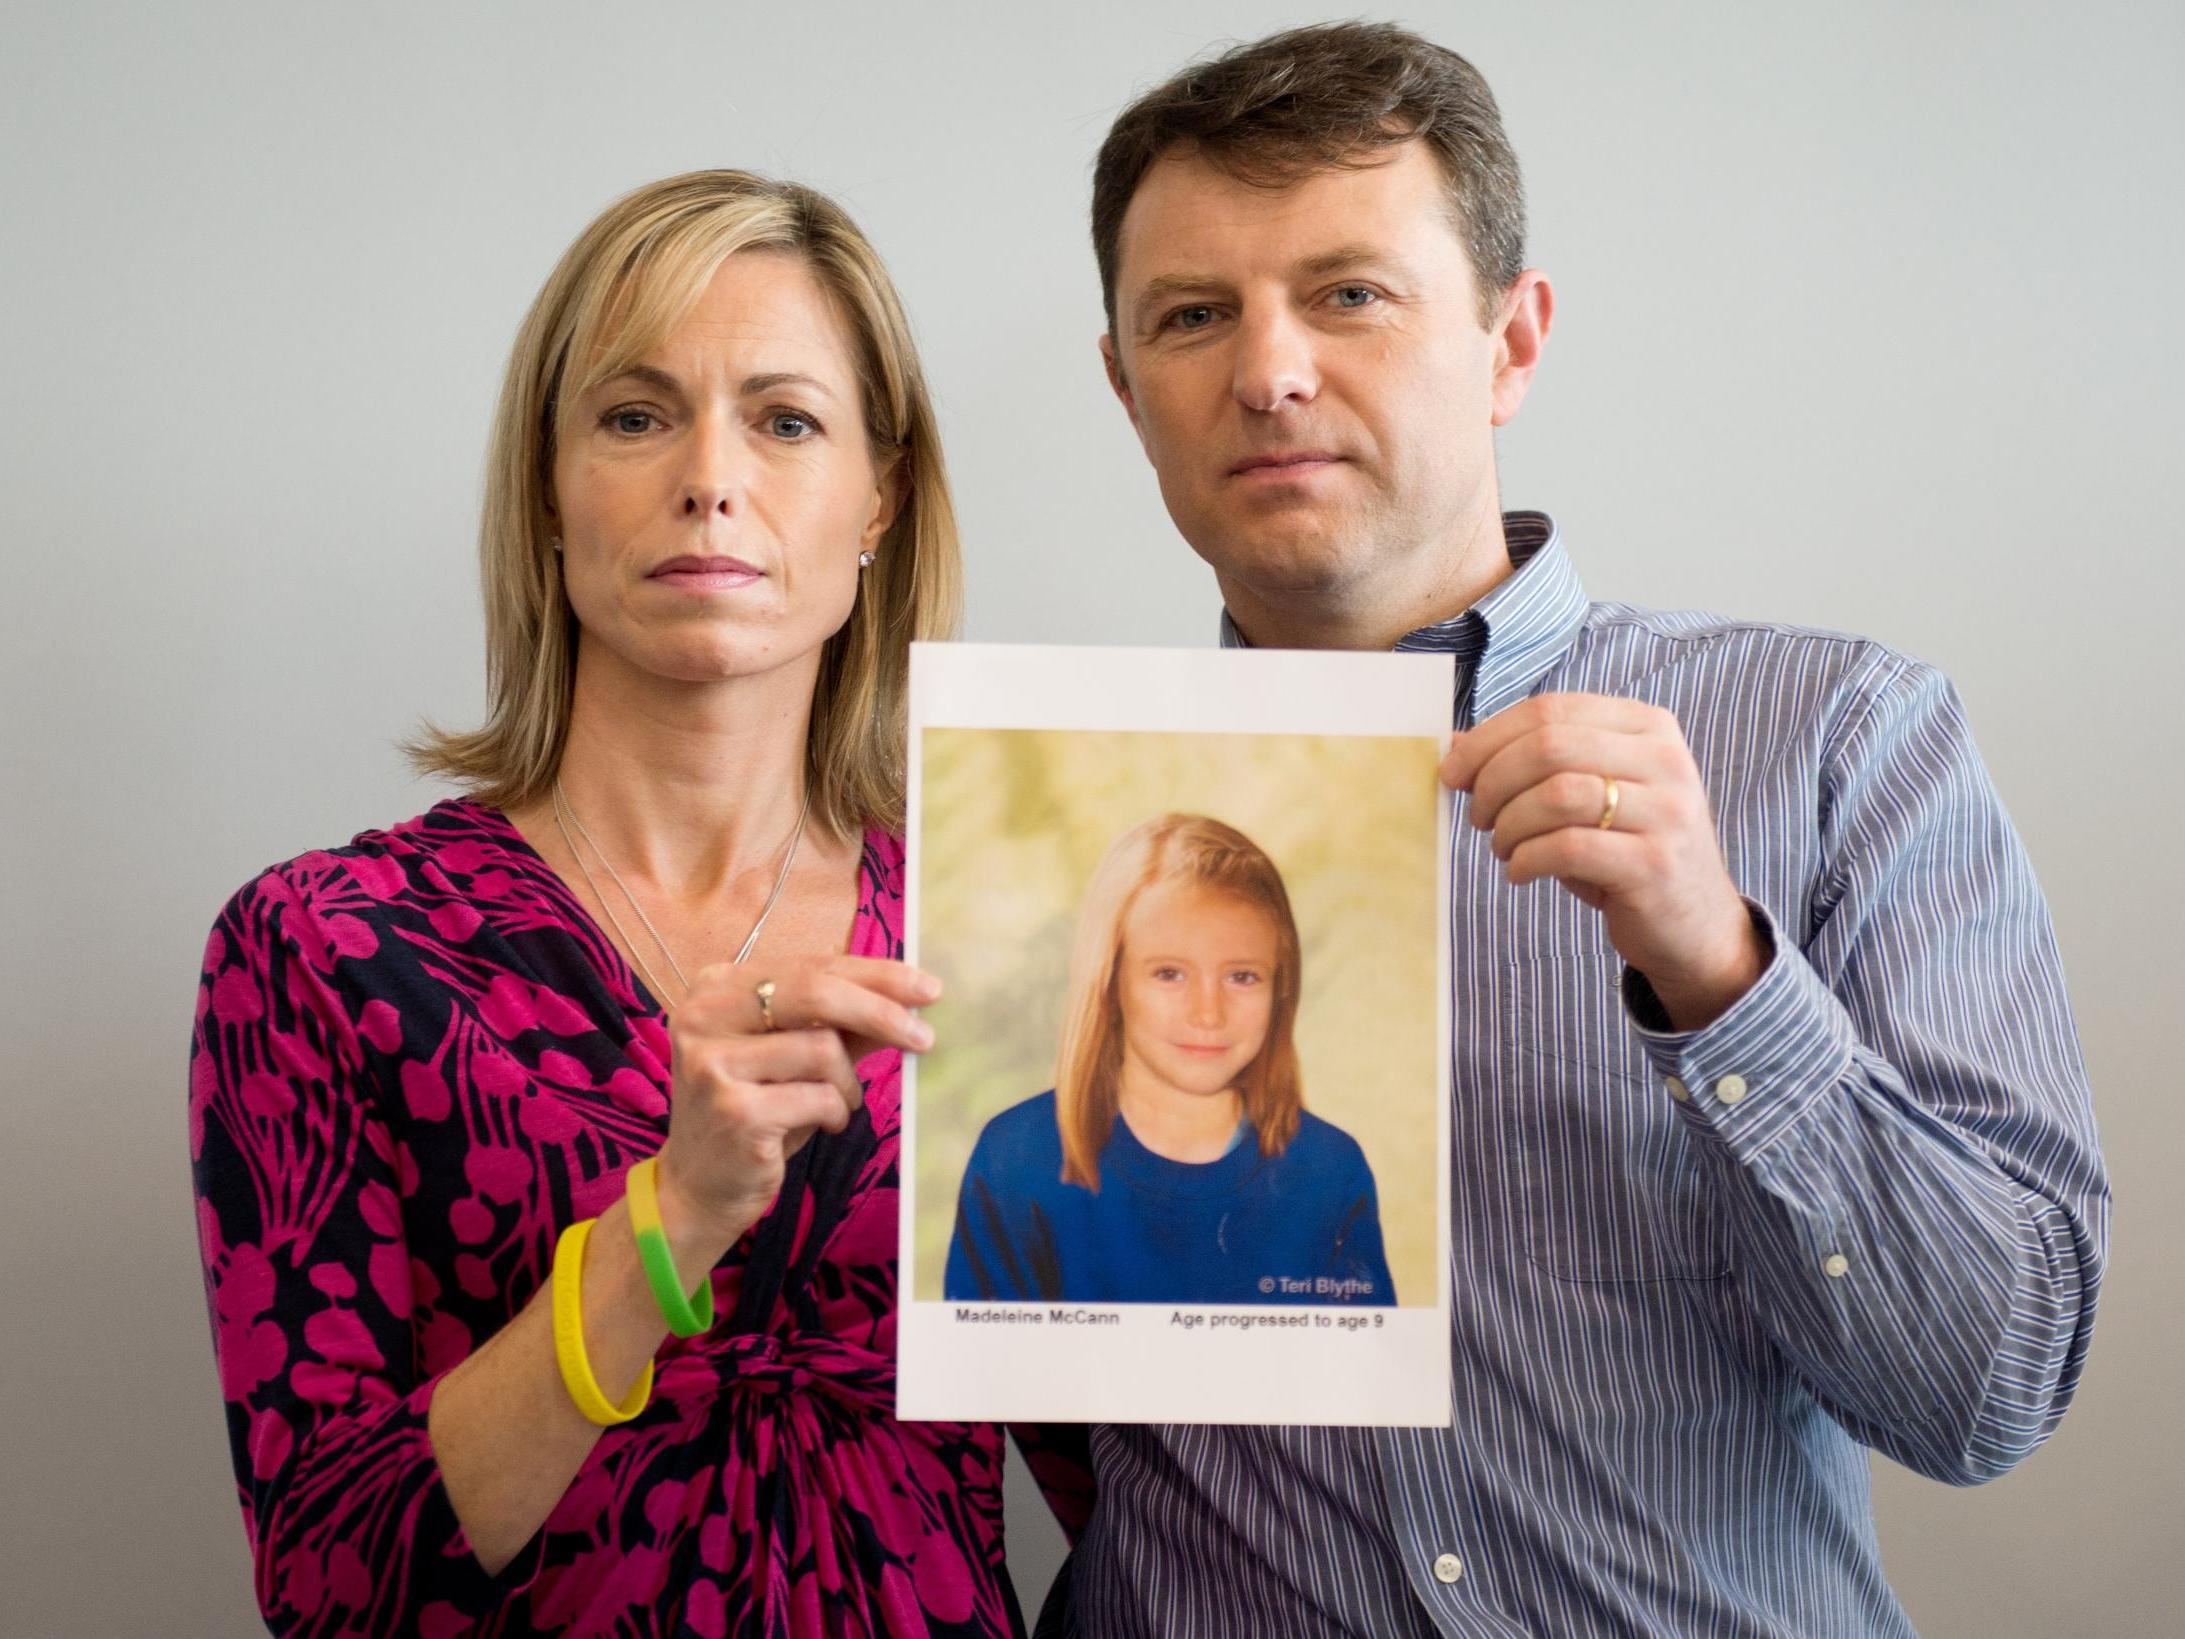 Madeleine McCann: A timeline of events in disappearance as police identify new suspect